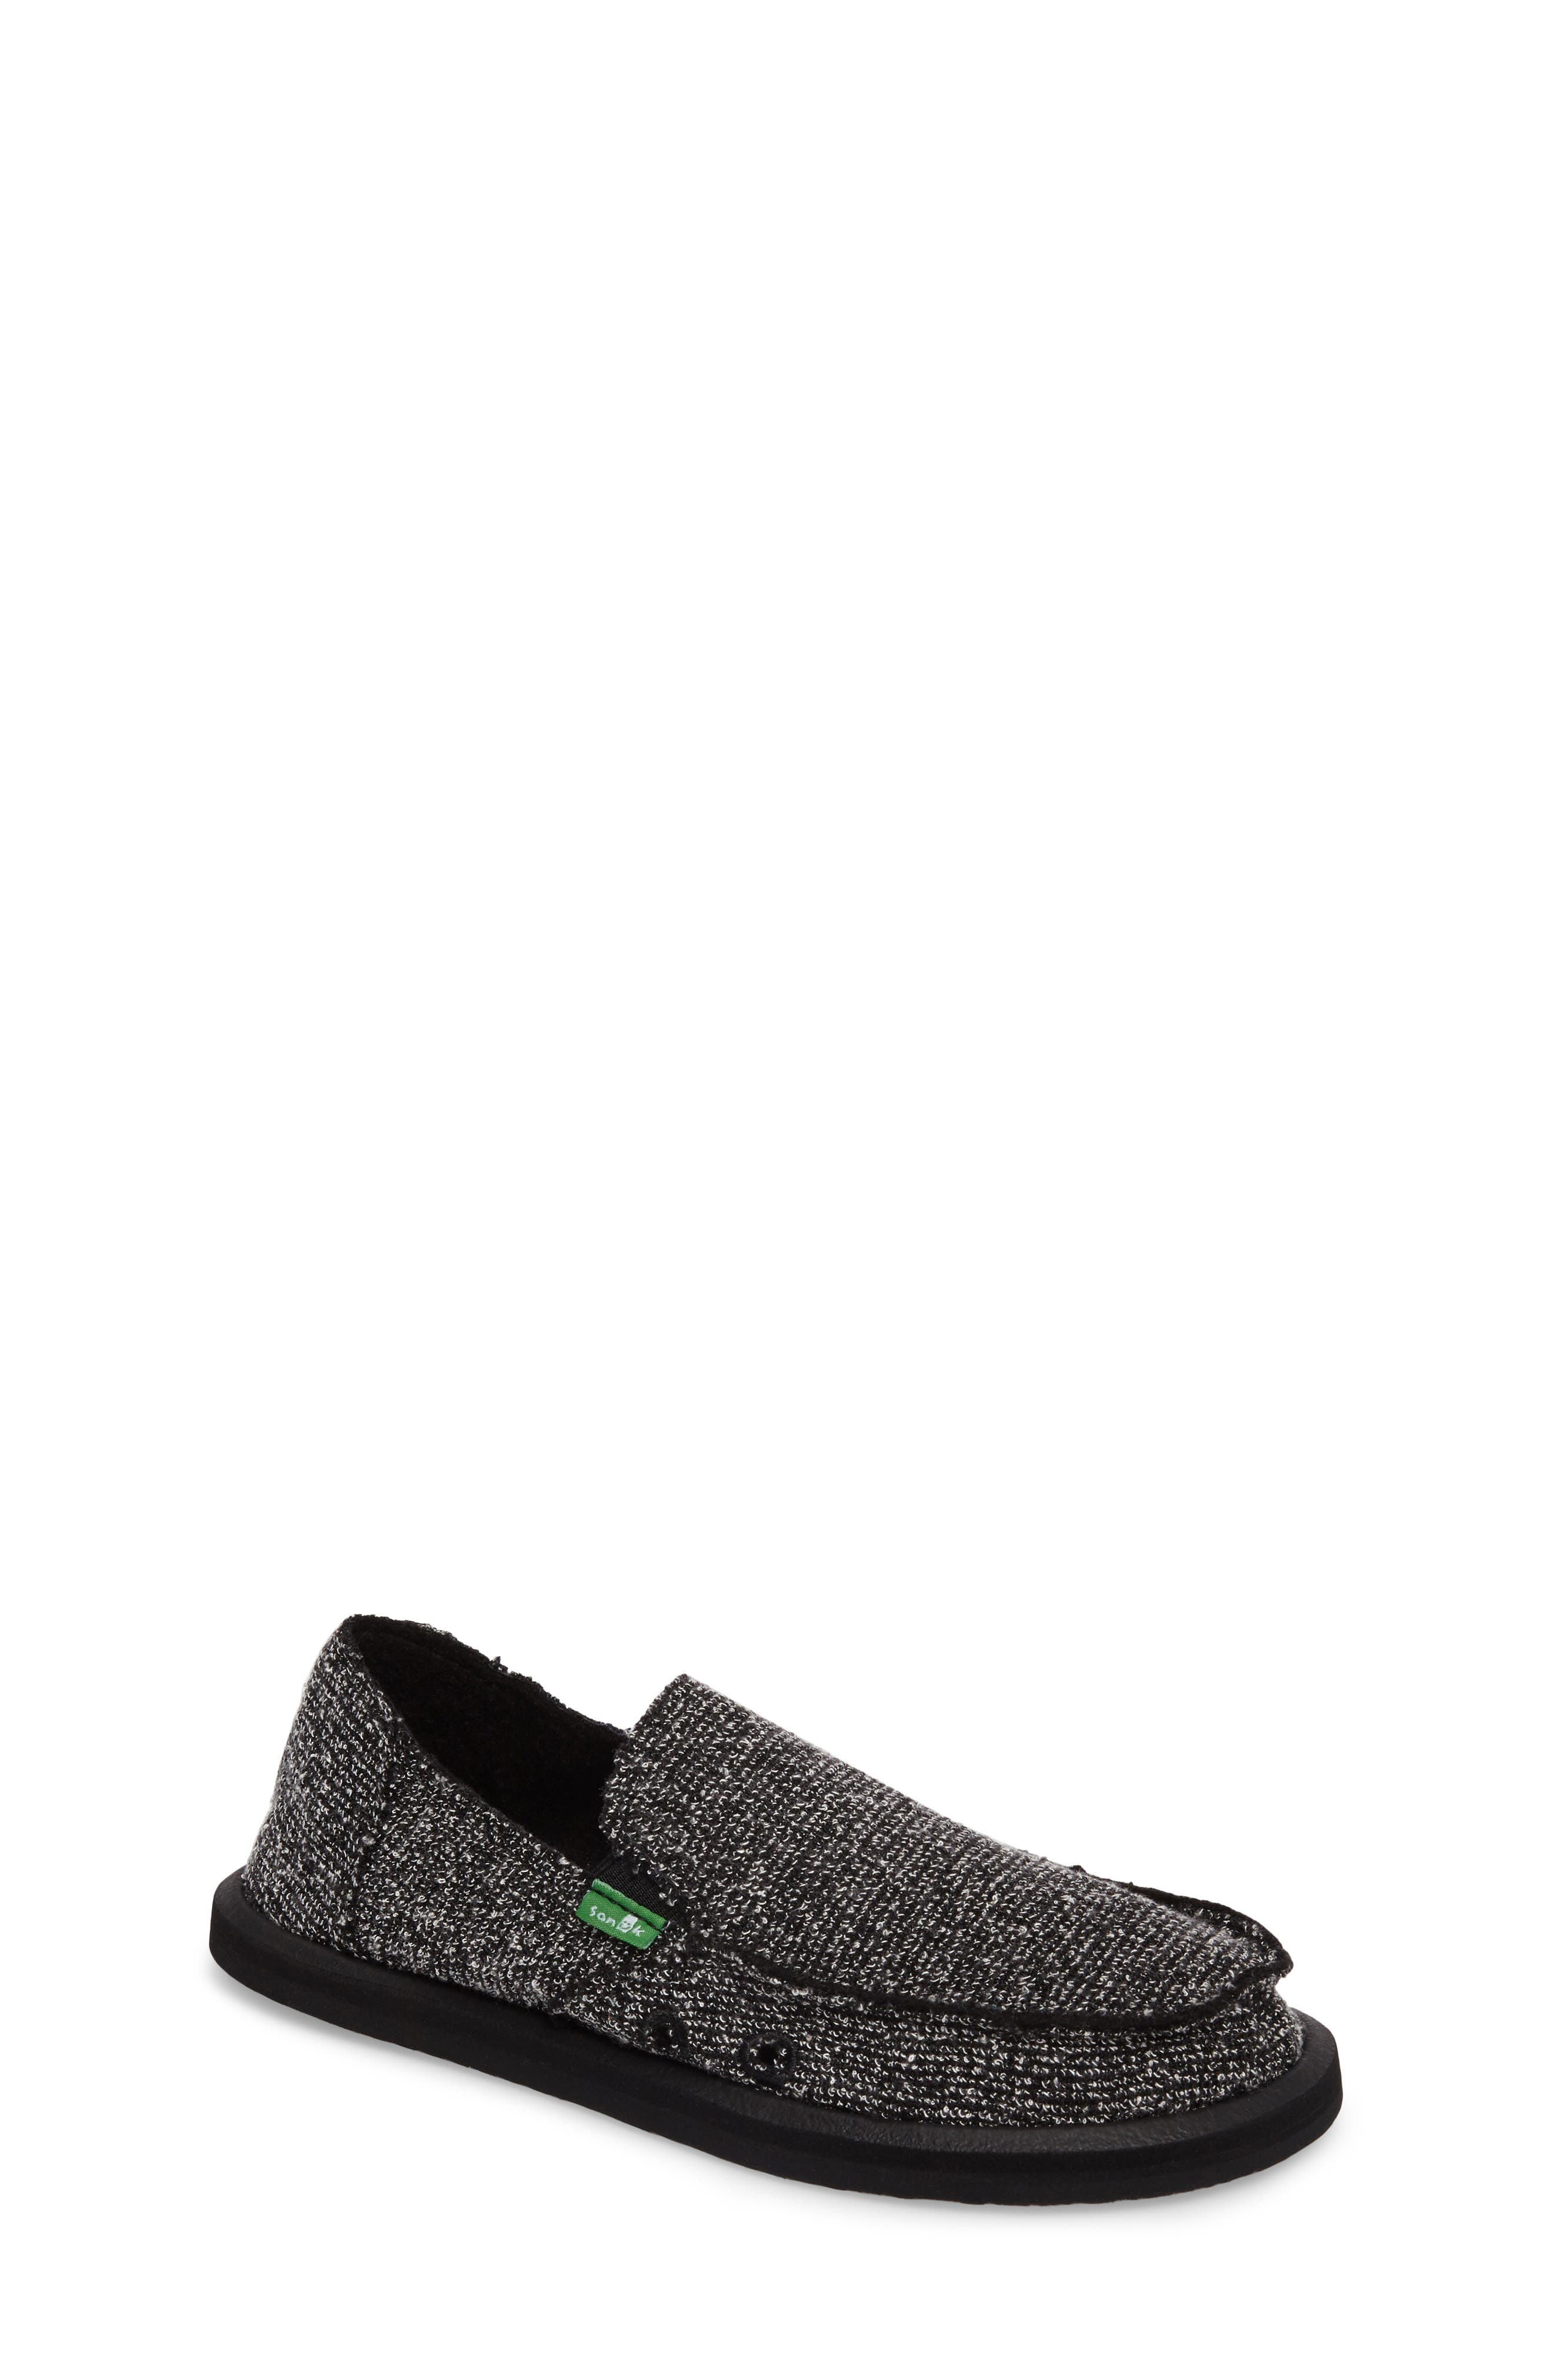 Sanuk Lil Donna Knitster Slip-On (Toddler, Little Kid & Big Kid)